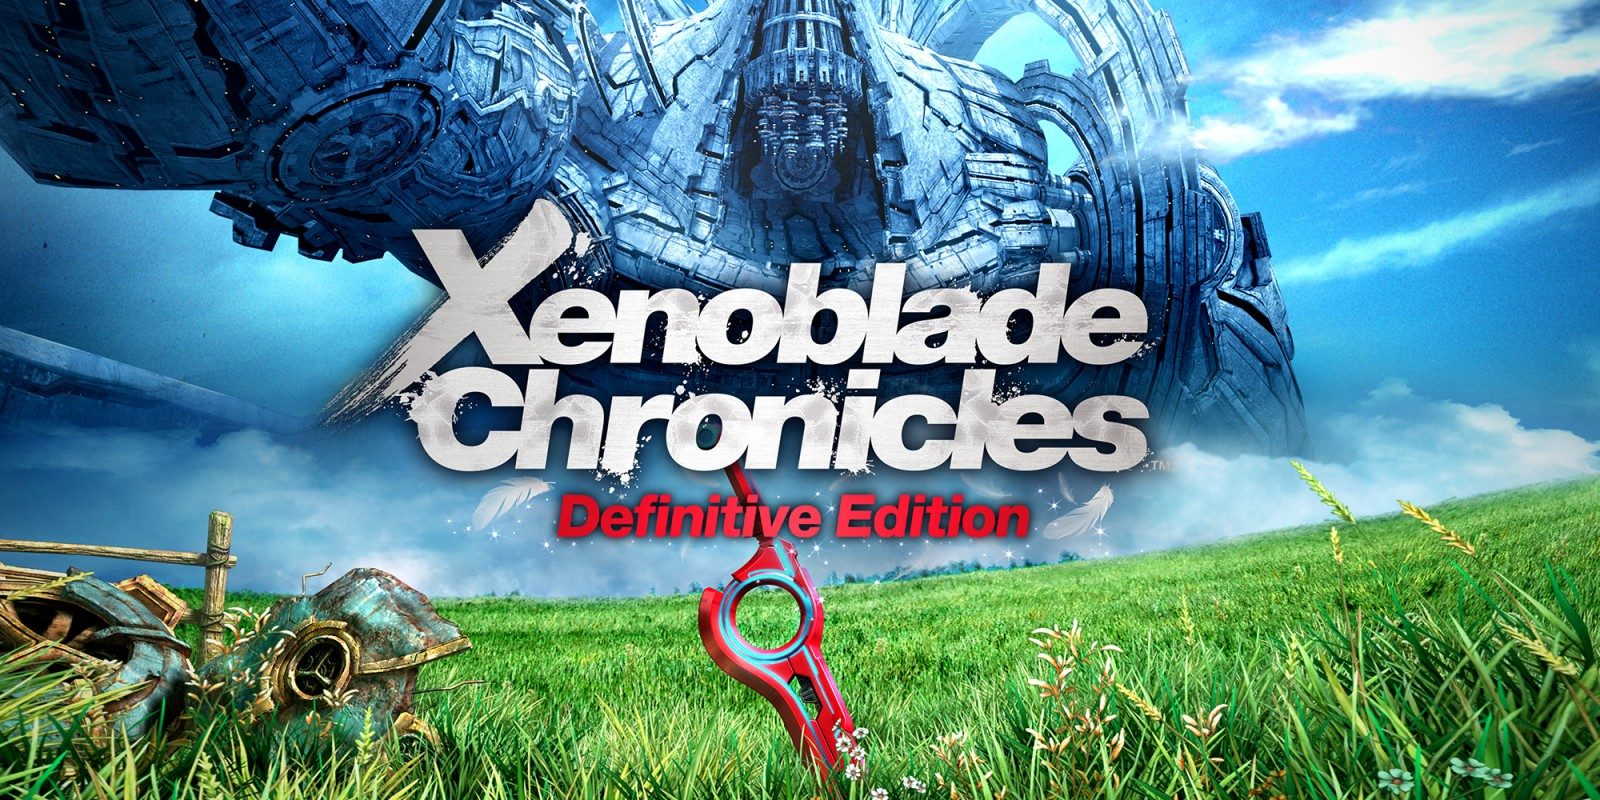 Xenoblade Chronicles Definitive Edition: Ontmoet de personages